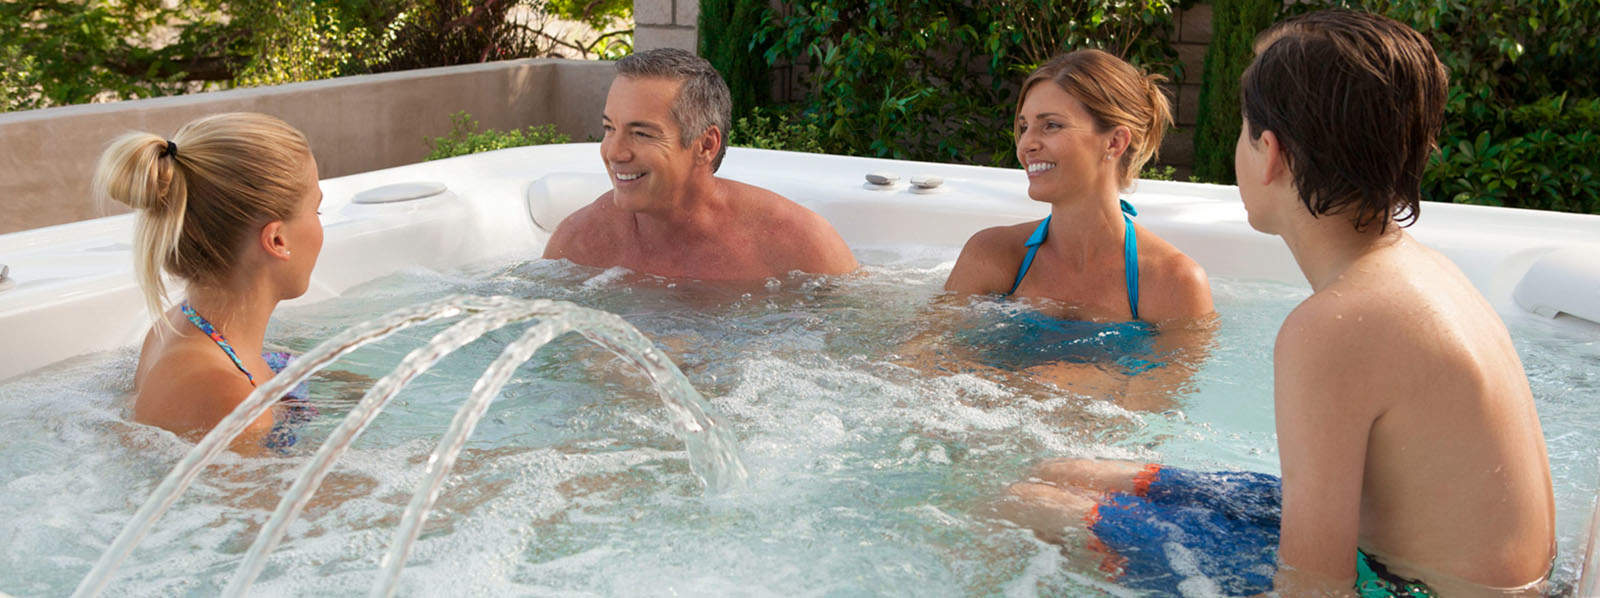 Why Buy Your New Spa From Florida Spa & Pool Warehouse?